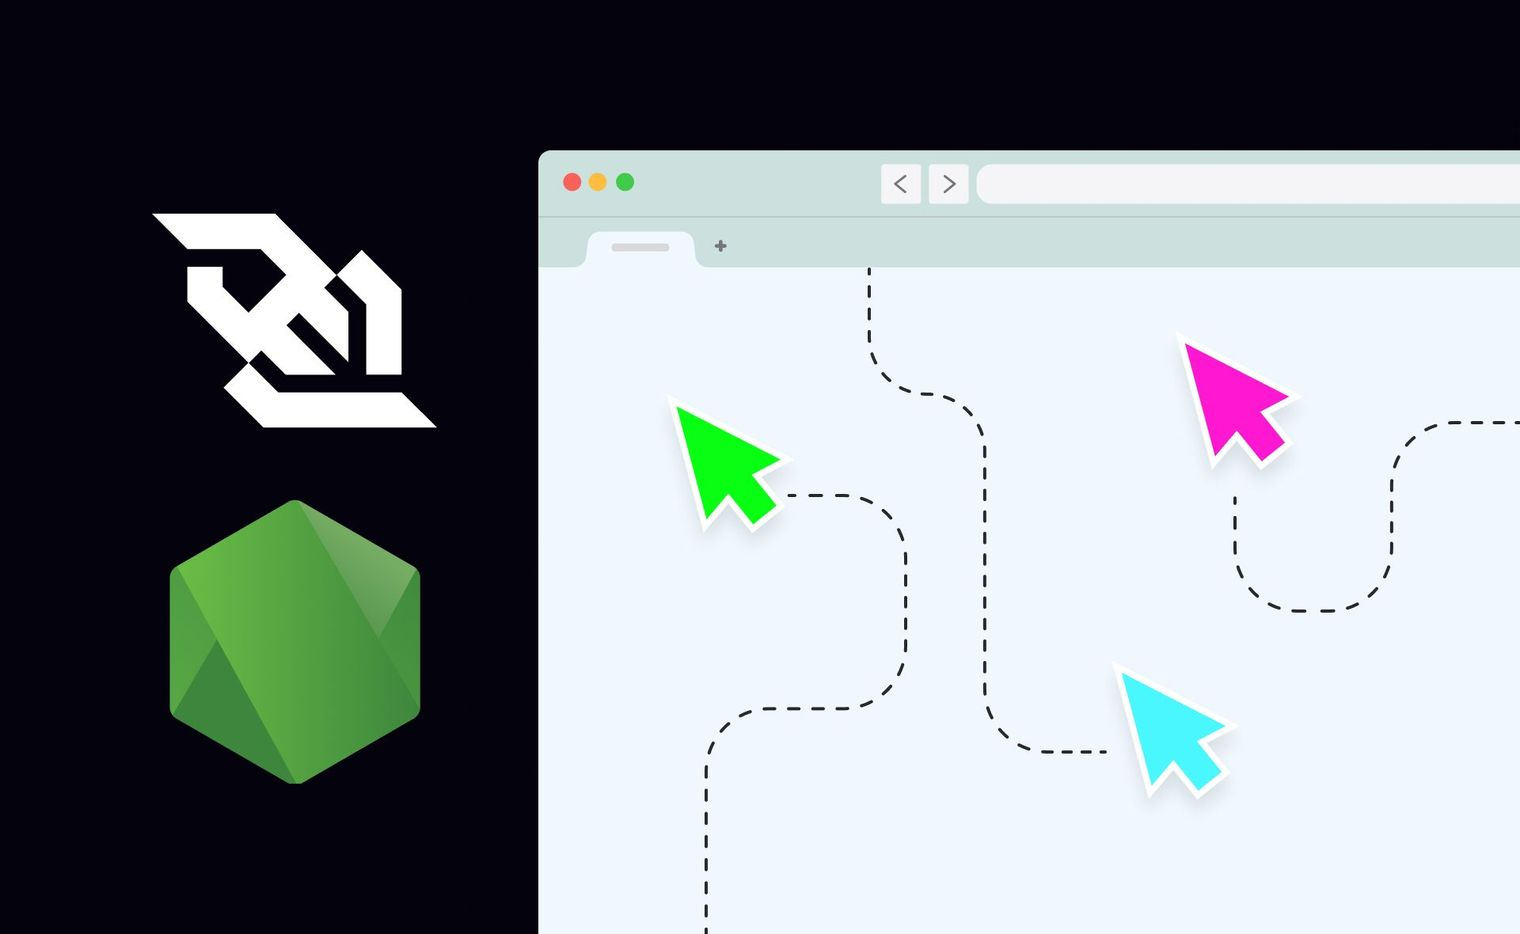 A header graphic showing the WebSockets logo and the node.js logo and a browser with cursors moving around it